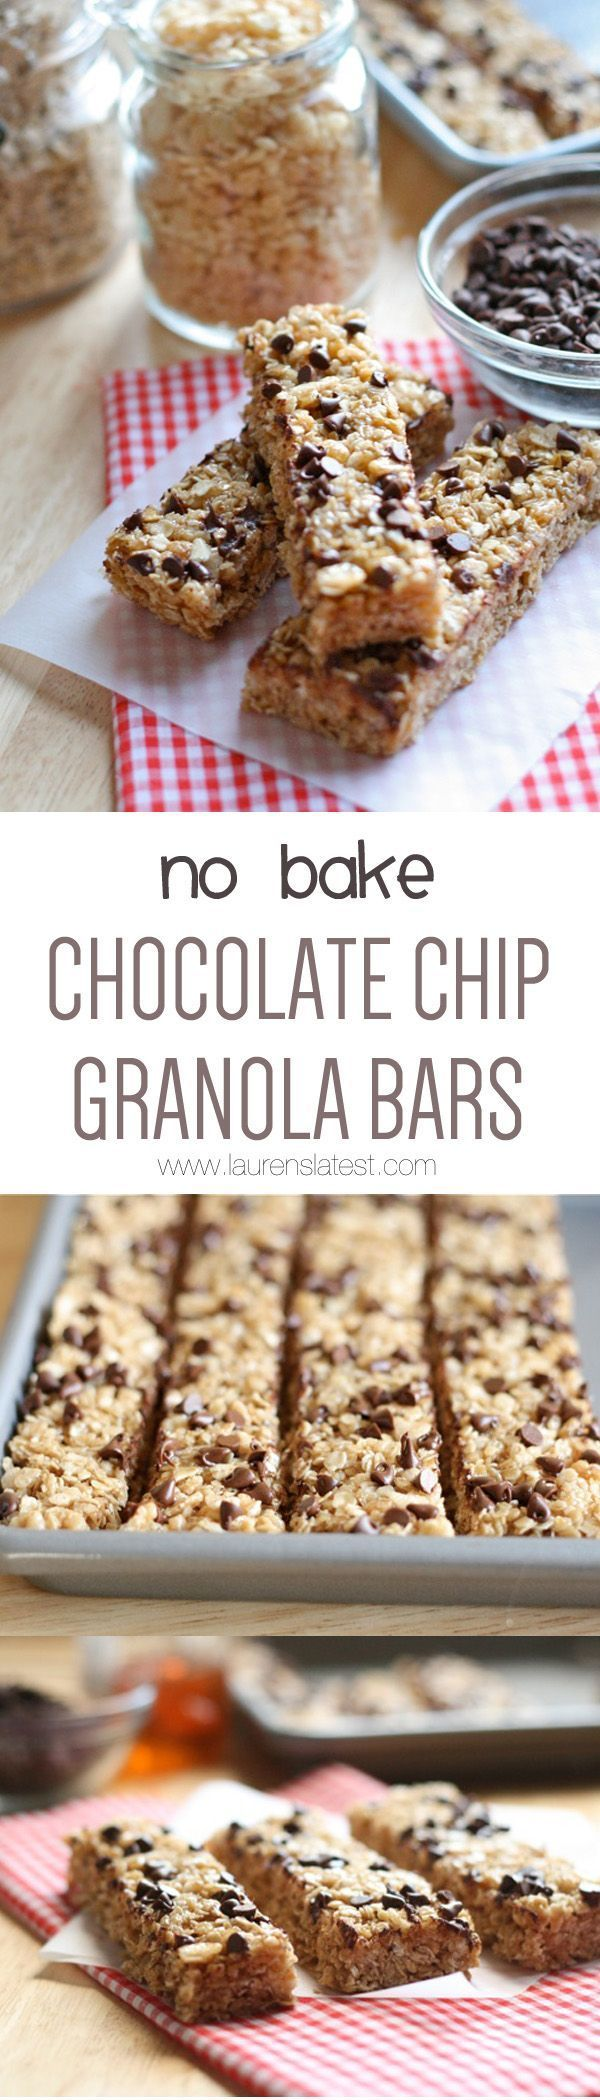 No Bake Chocolate Chip Granola Bars that are easy to make and healthy! Make a bunch of these and use them as a snack for school lunches!